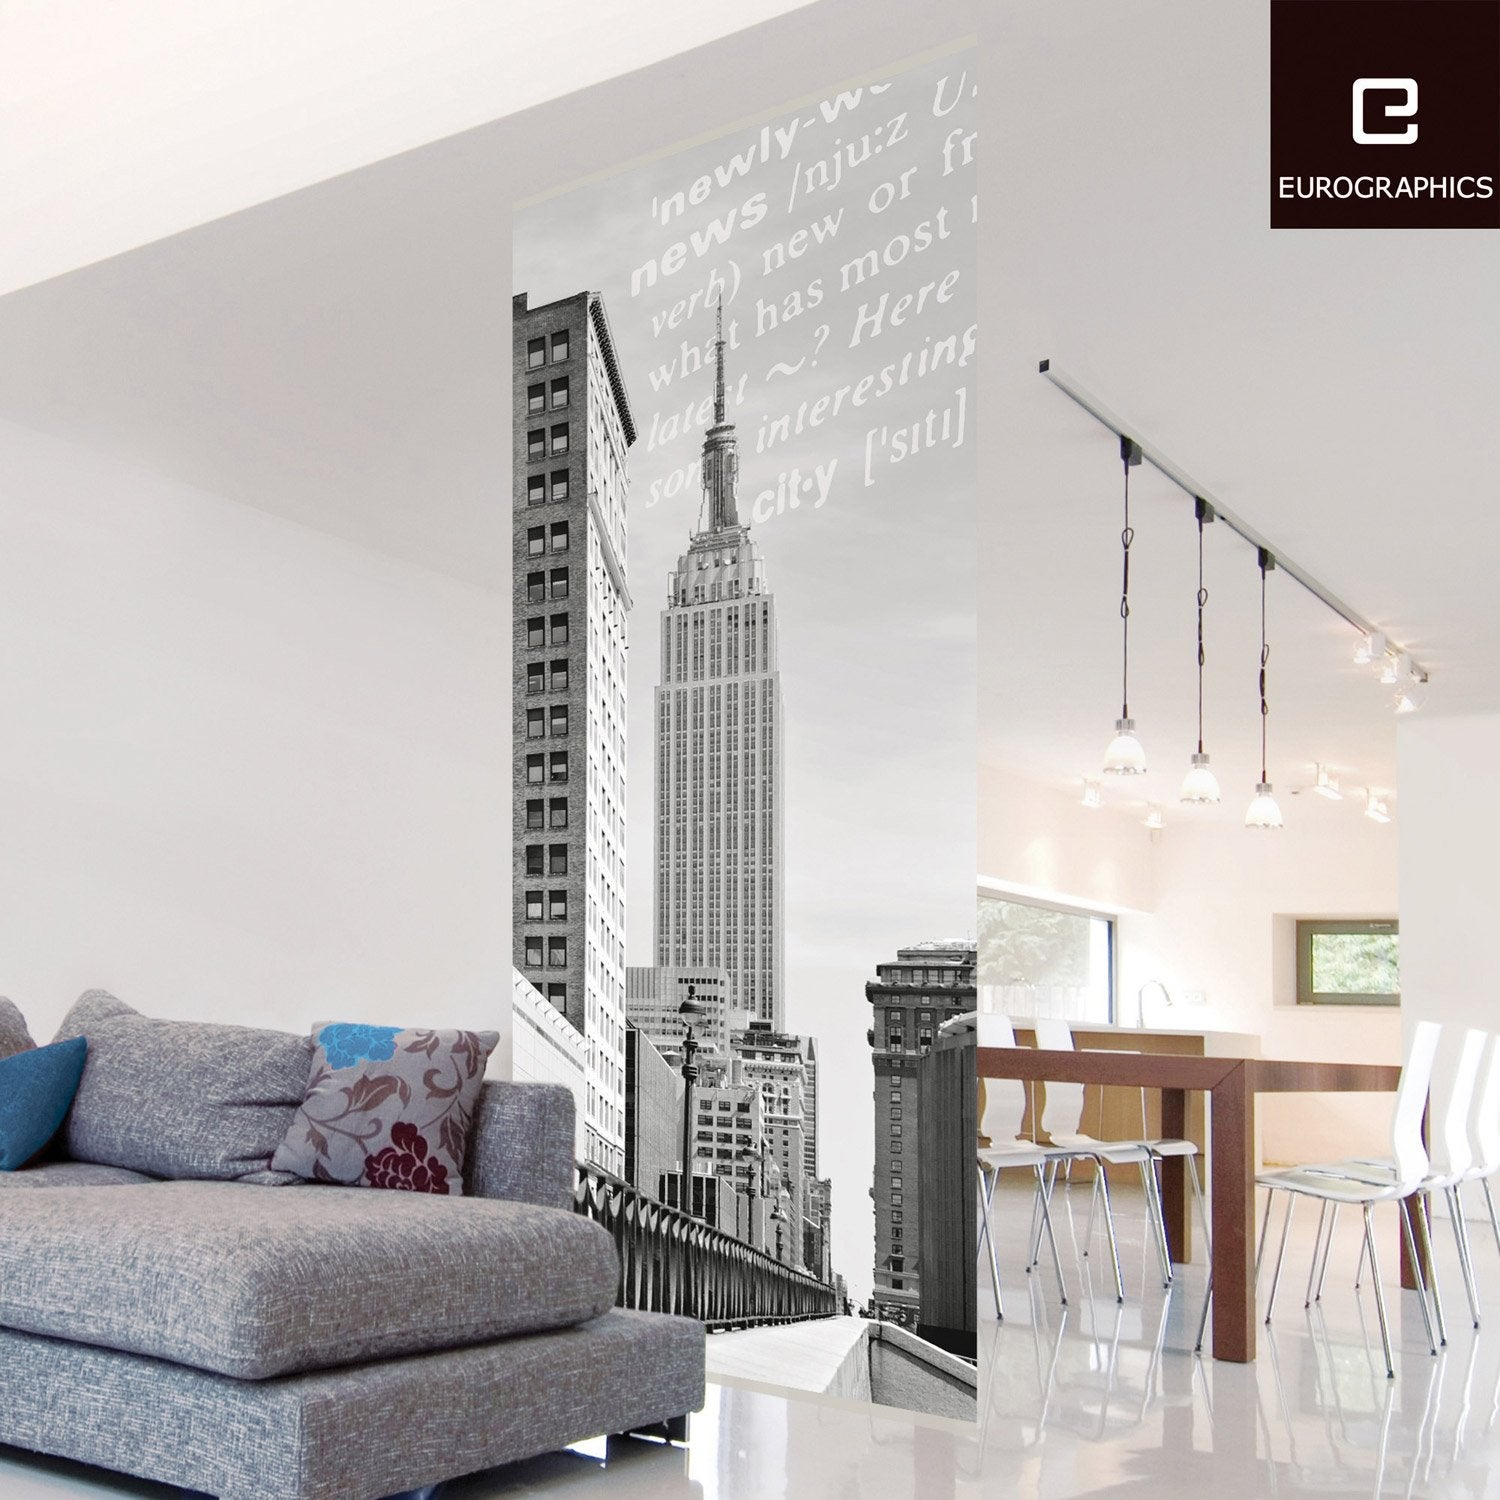 Cloison decorative nyc empire state building 100x240 - Cloison amovible leroy merlin ...